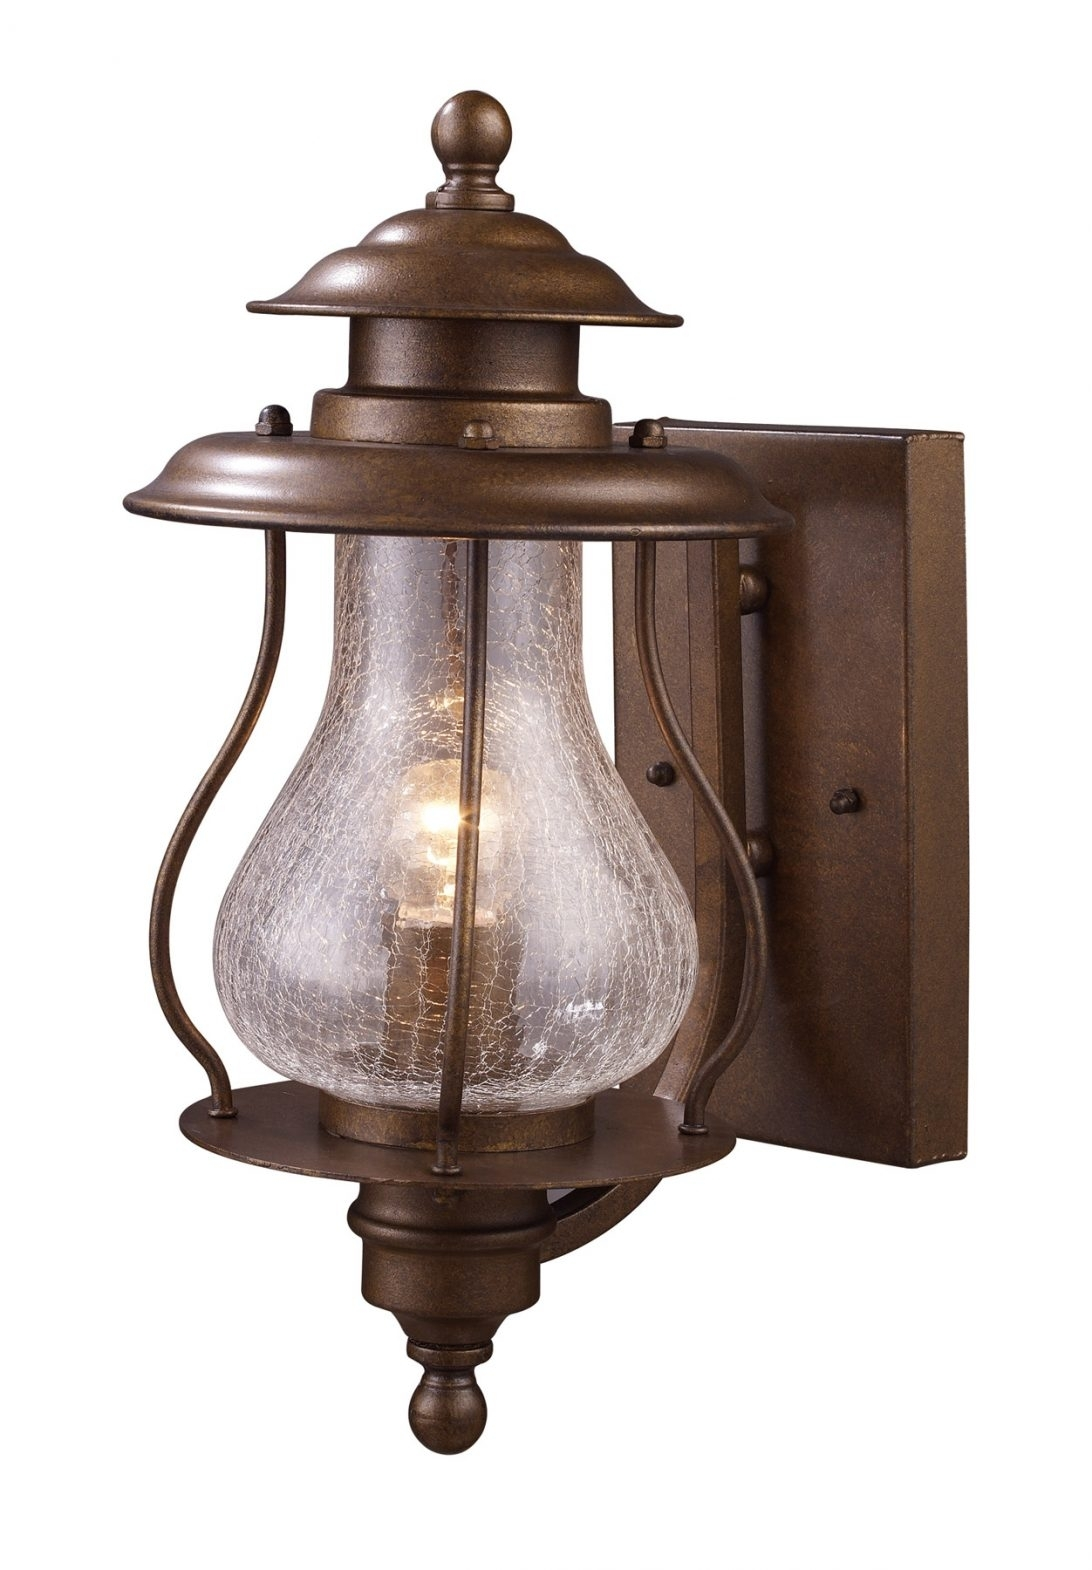 Wall Mount Porch Lights Patio Exterior Solar Outdoor Lanterns within Wall Mounted Outdoor Lanterns (Image 20 of 20)